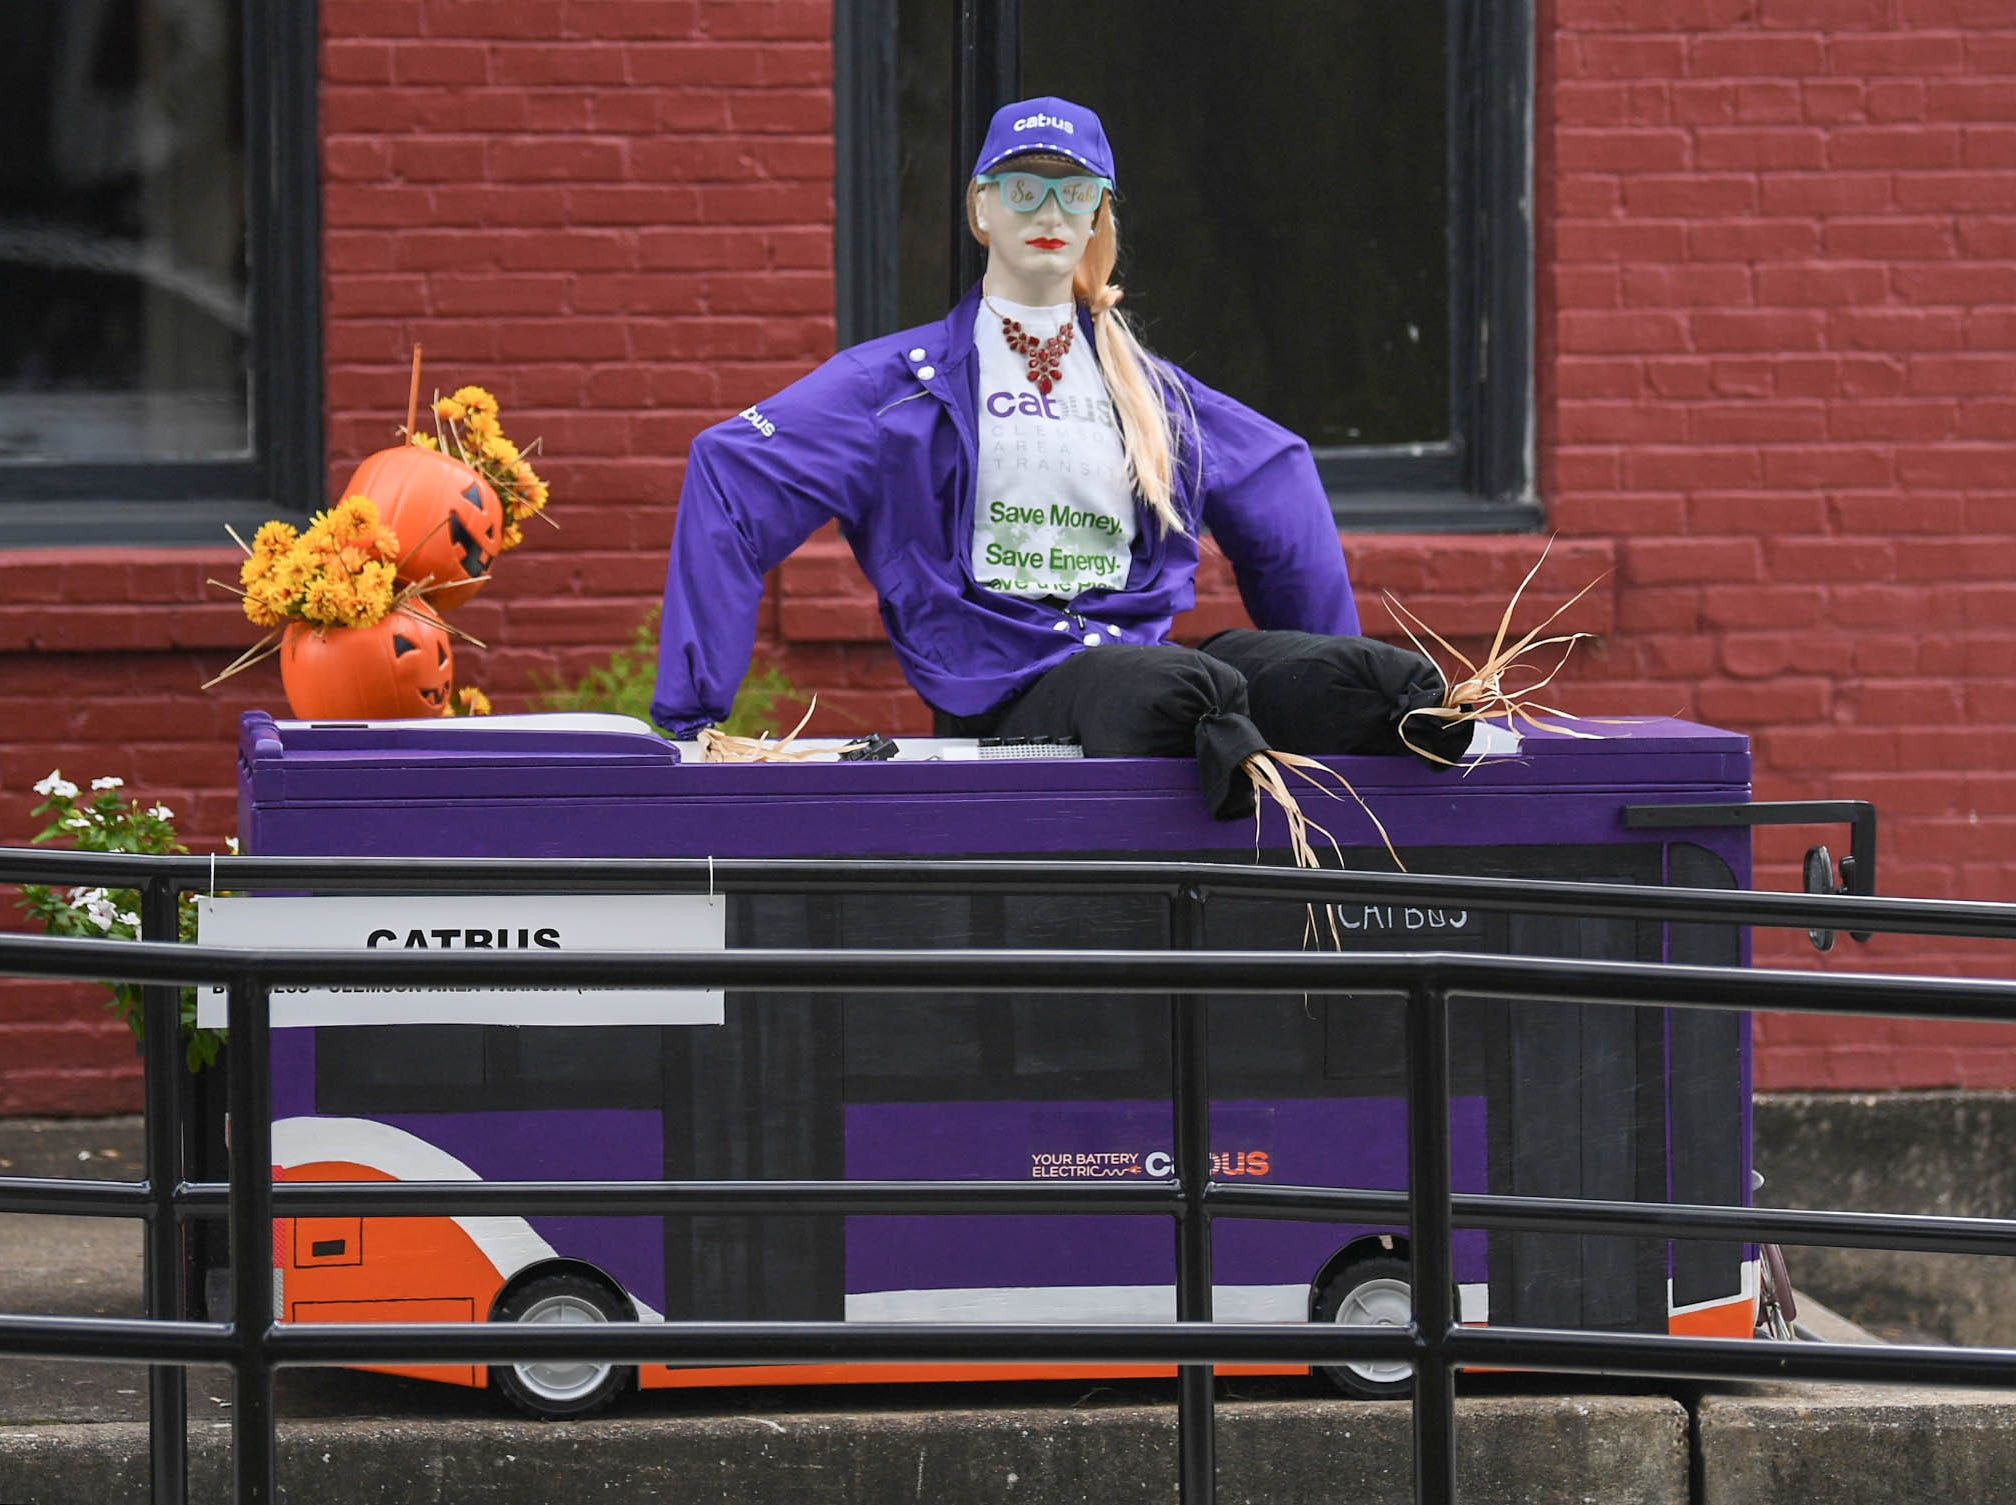 A scarecrow sitting on a model of a CATBUS is one of many displays in The Pendleton Scarecrow Contest leading up to the 20th Fall Harvest Festival in the village green Saturday, October 6 from 10 a.m. to 5 p.m. The annual contest in Pendleton for businesses, individuals, groups, organizations and churches who create fun not scary Scarecrows. People driving around the downtown square can see different theme scarecrows.